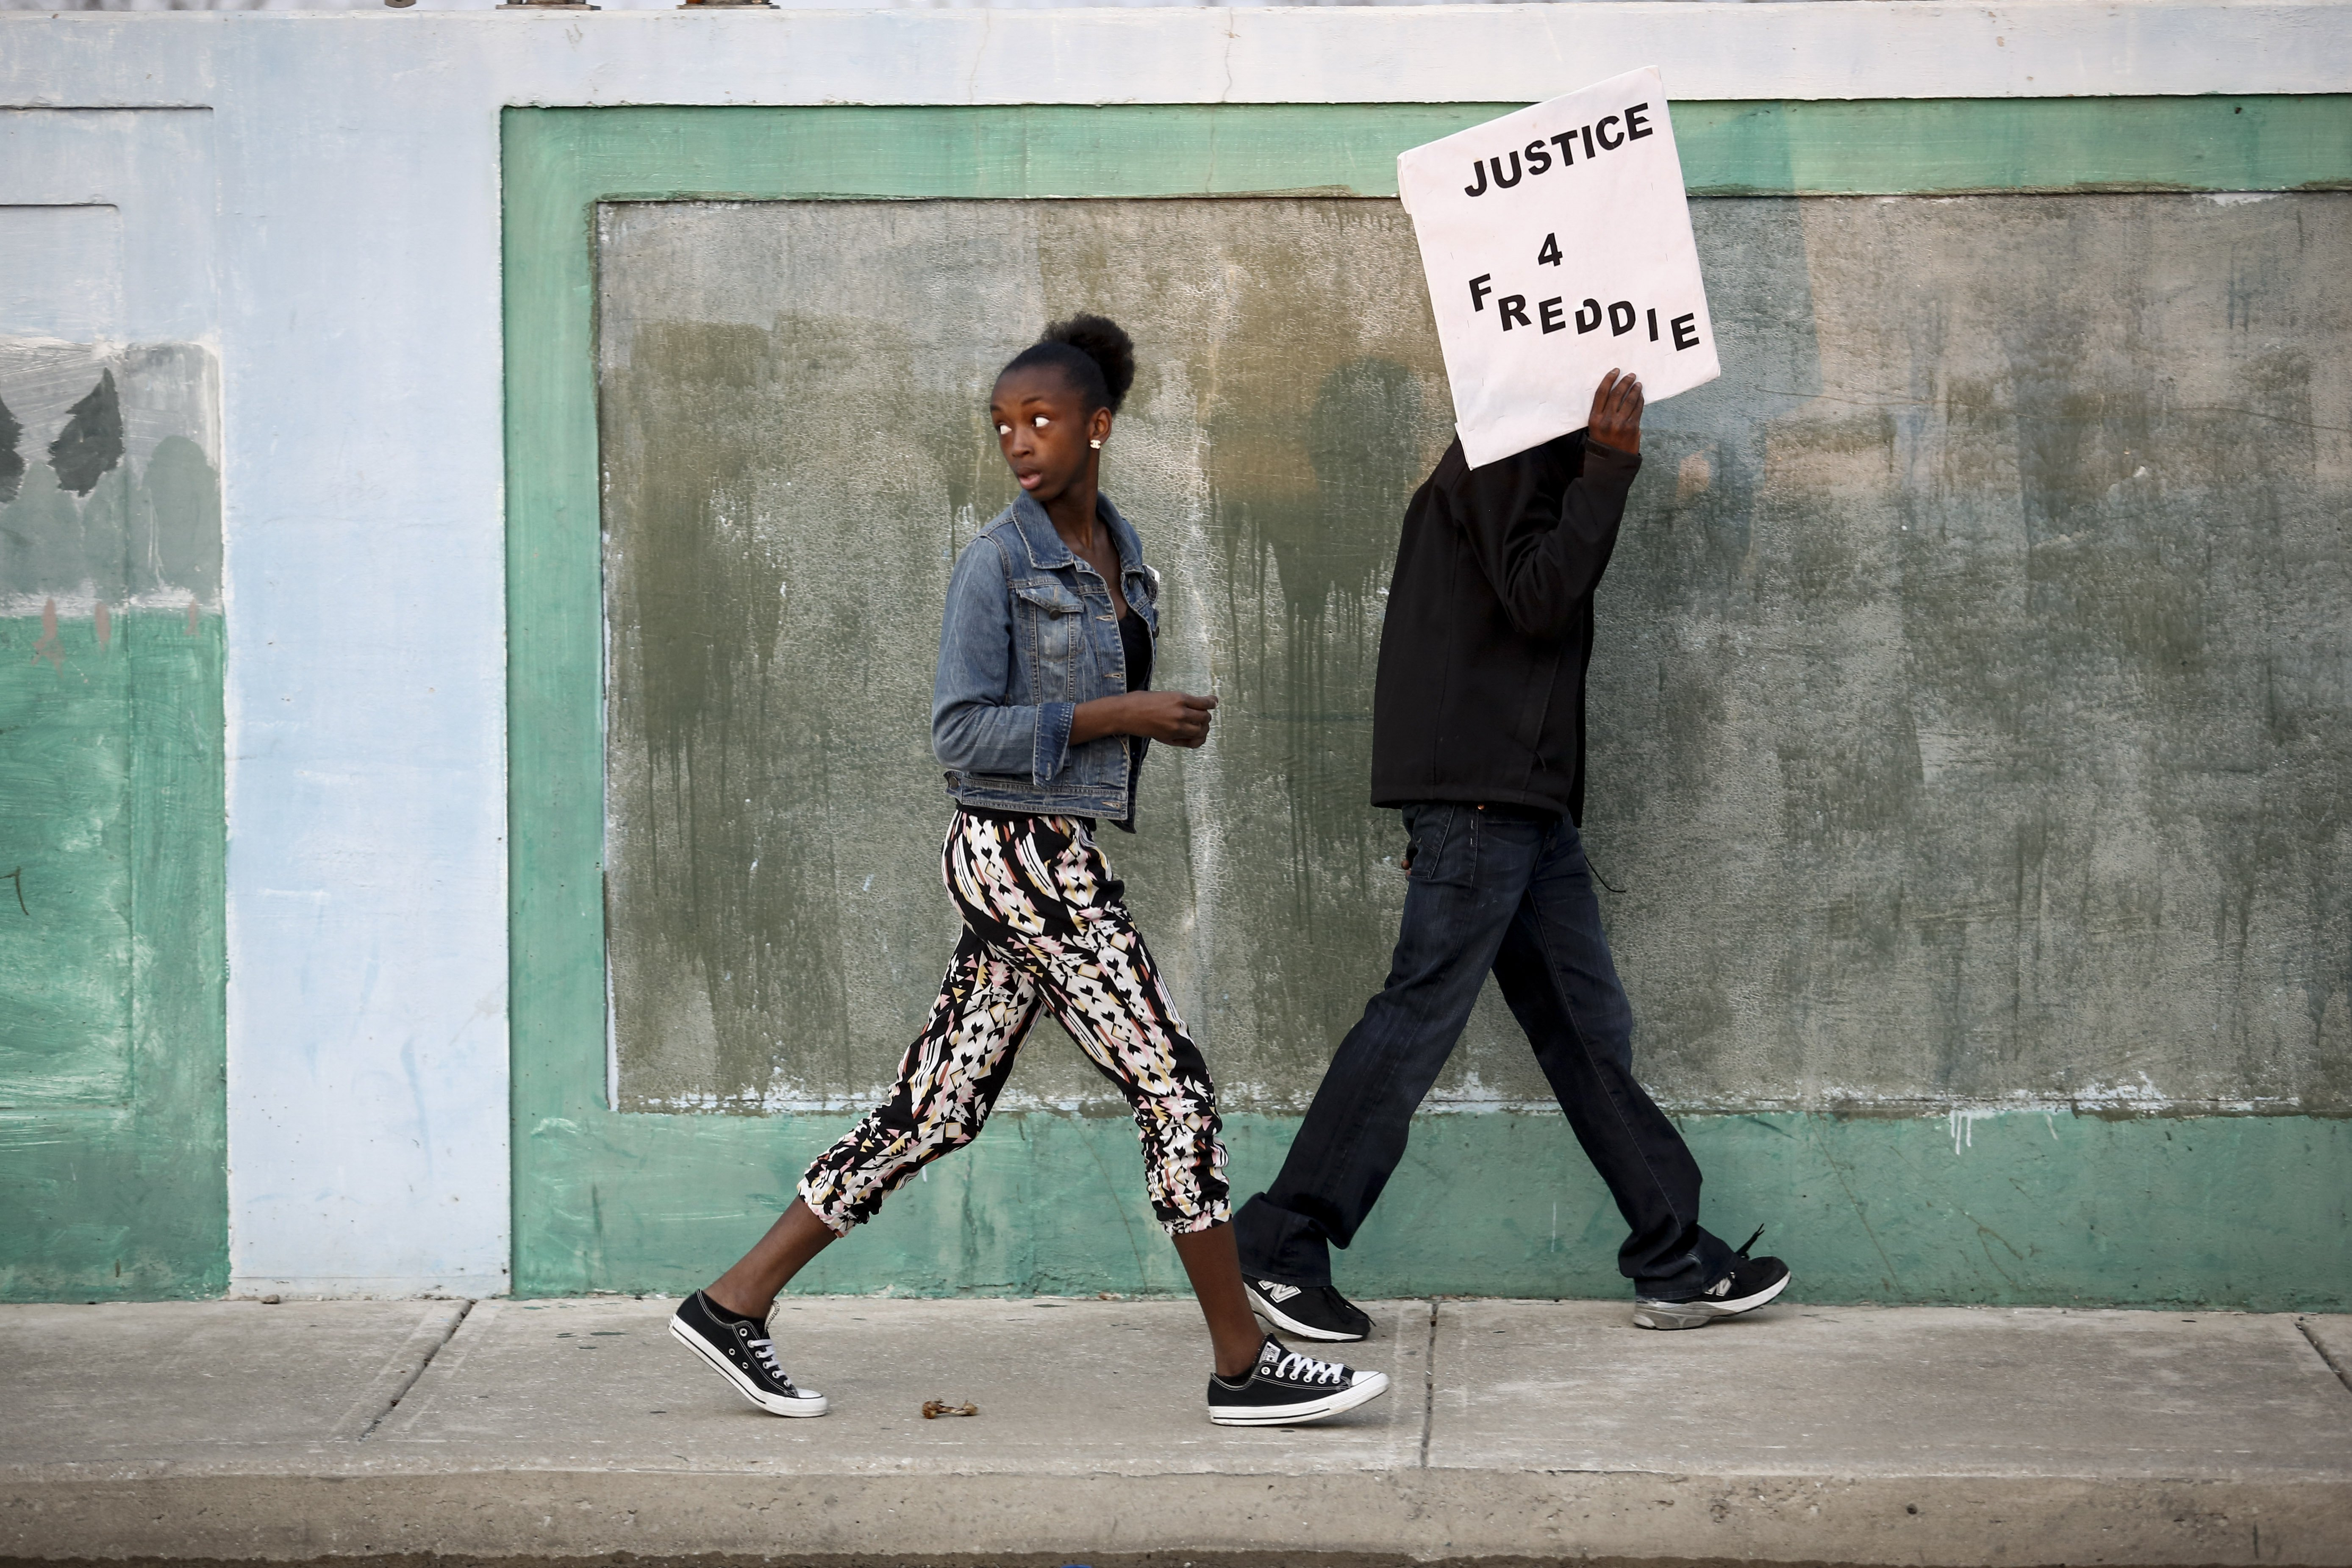 Protestors walk toward Baltimore Police Department's Western District police station during a march and vigil over the death of Freddie Gray in Baltimore on April 21, 2015.